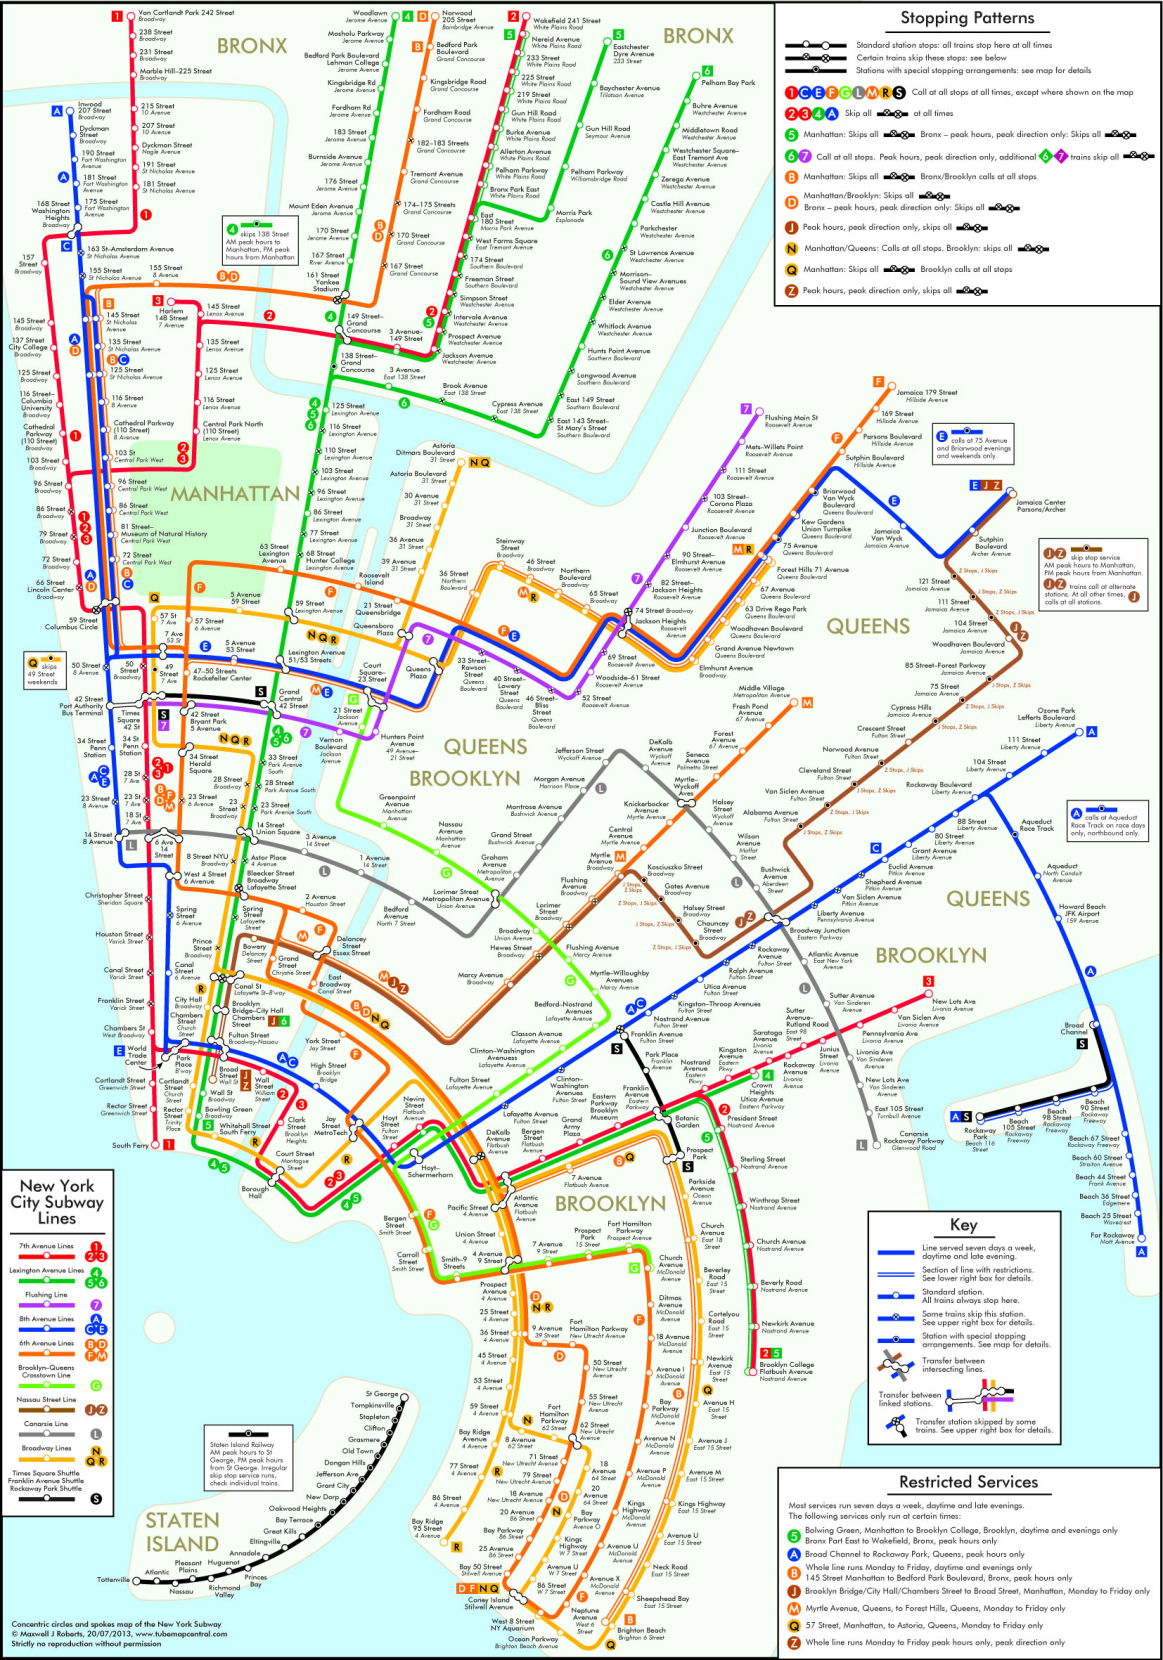 1980 Nyc Subway Map.The Nyc Subway Map By Allan Keyes With Additional Content By Sam